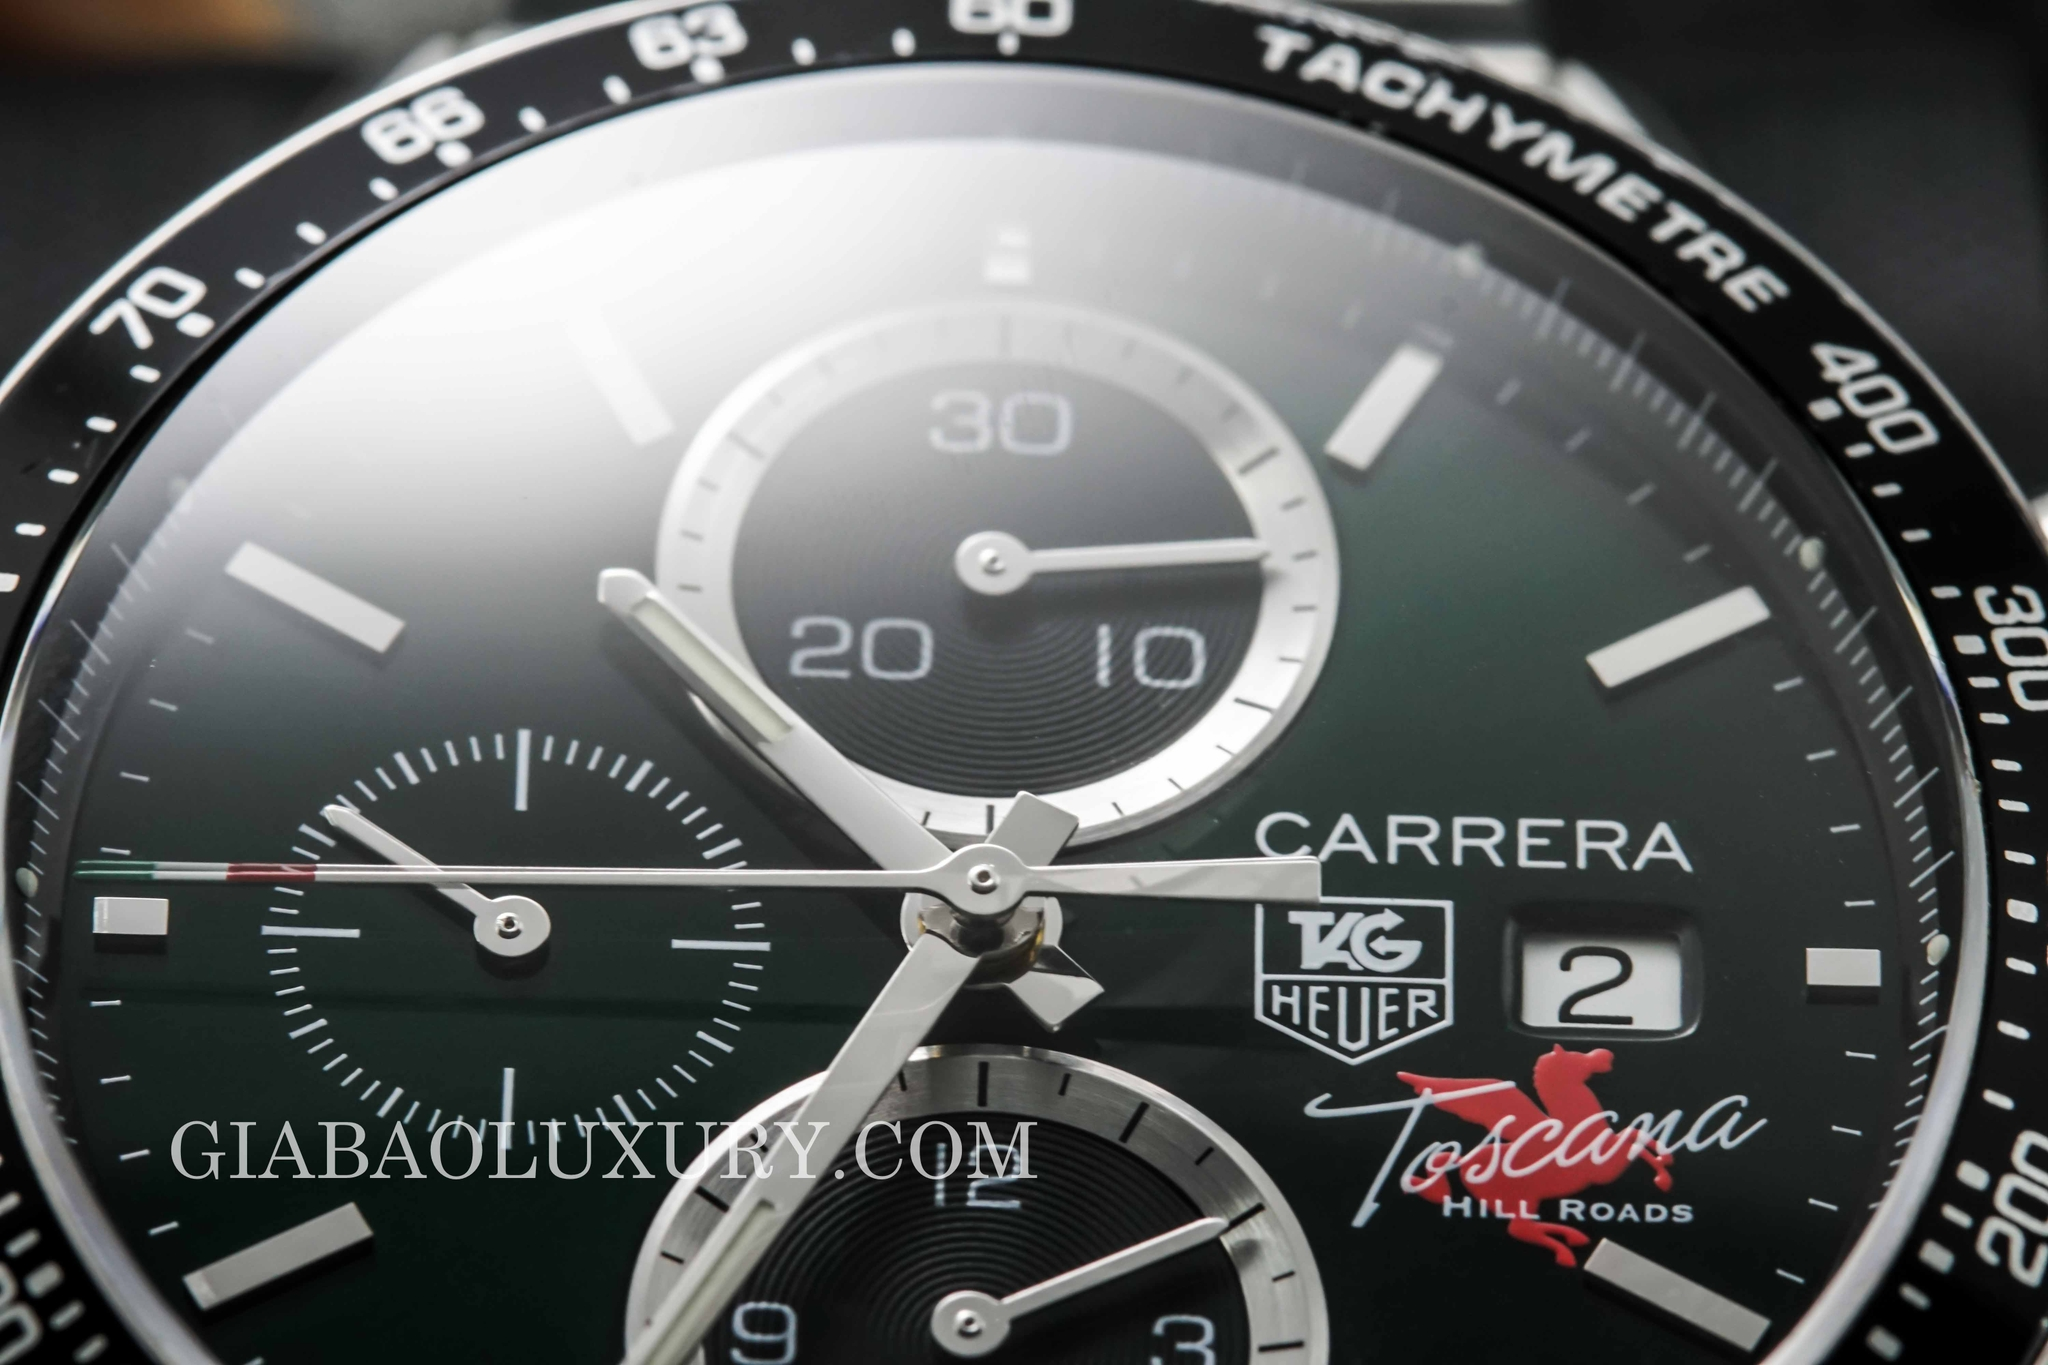 đồng hồ Tag Heuer Toscana Hill Road